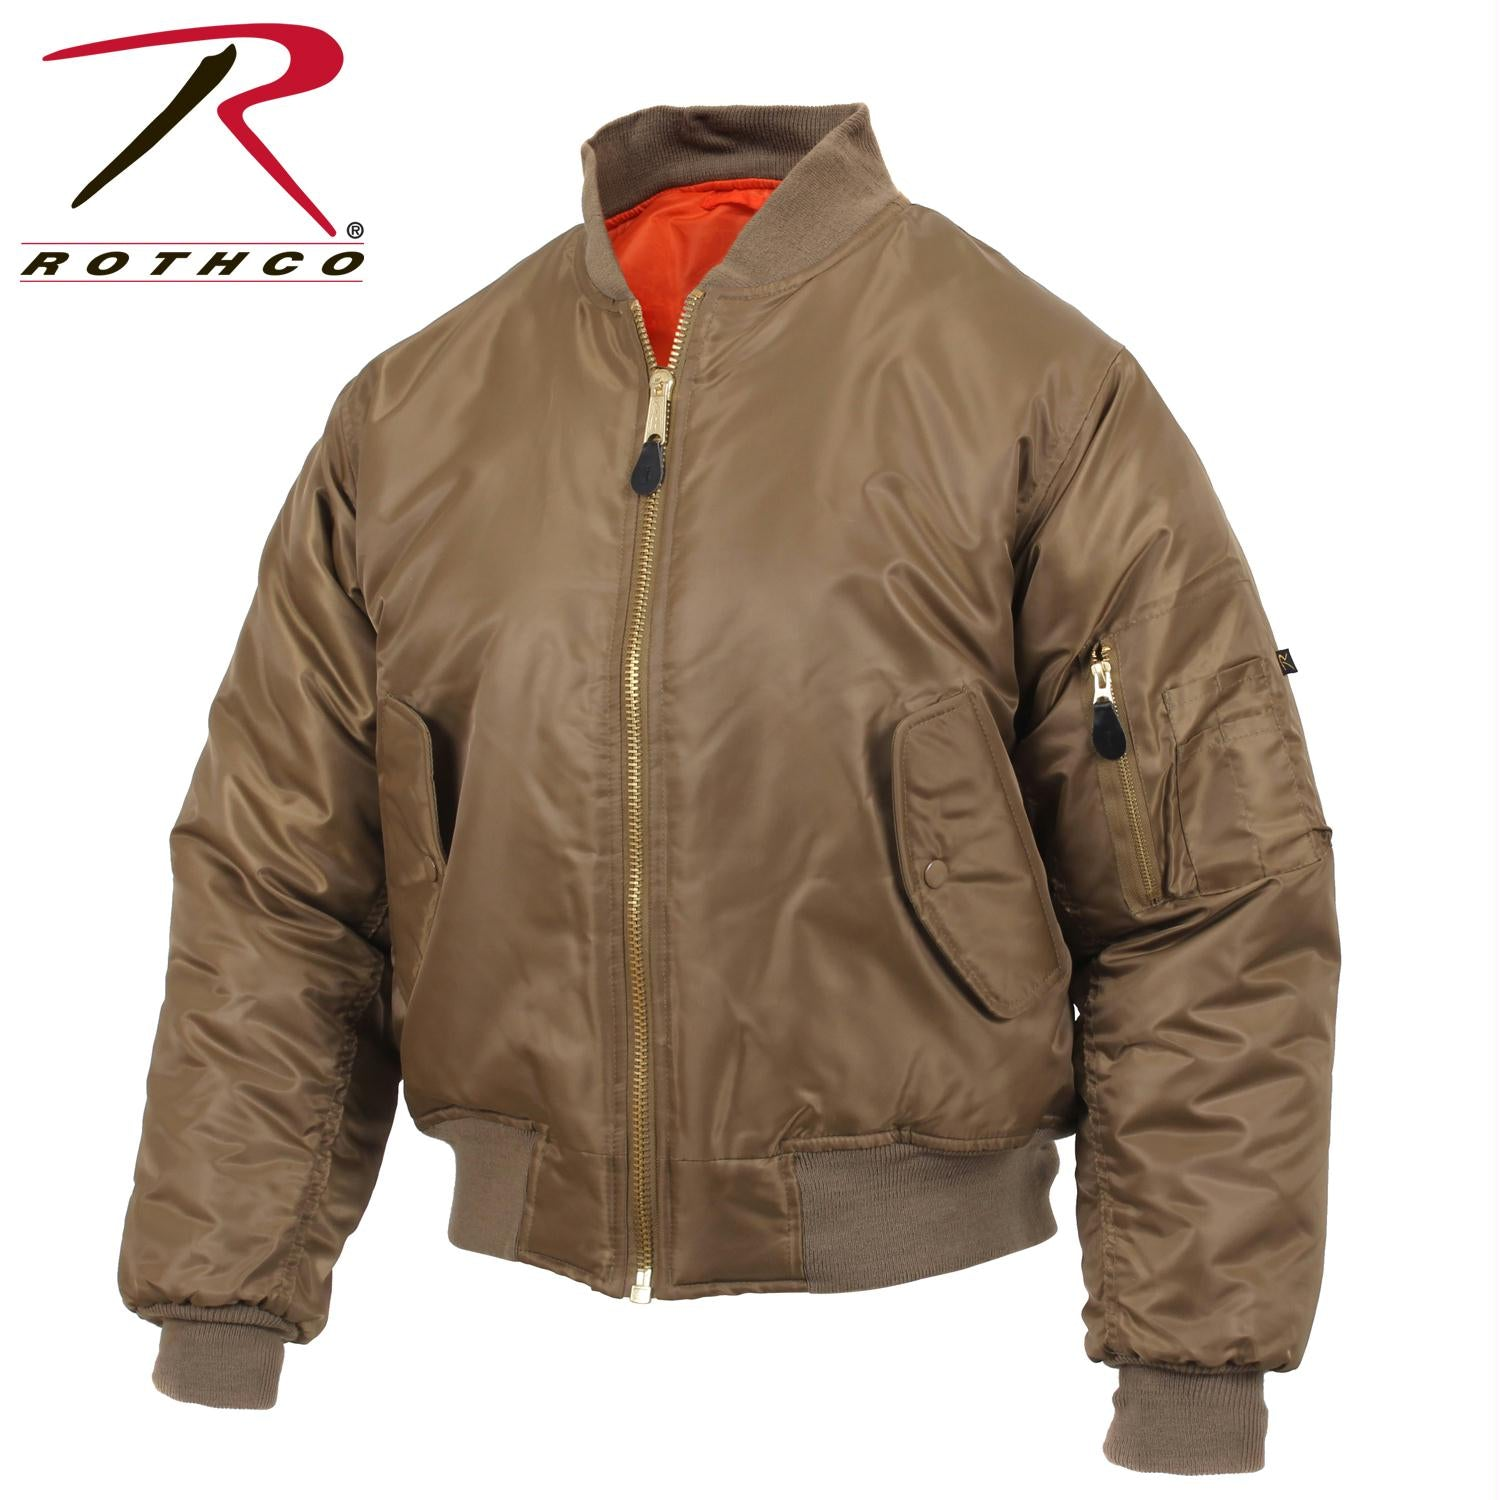 Rothco MA-1 Flight Jacket - Coyote Brown / 4XL